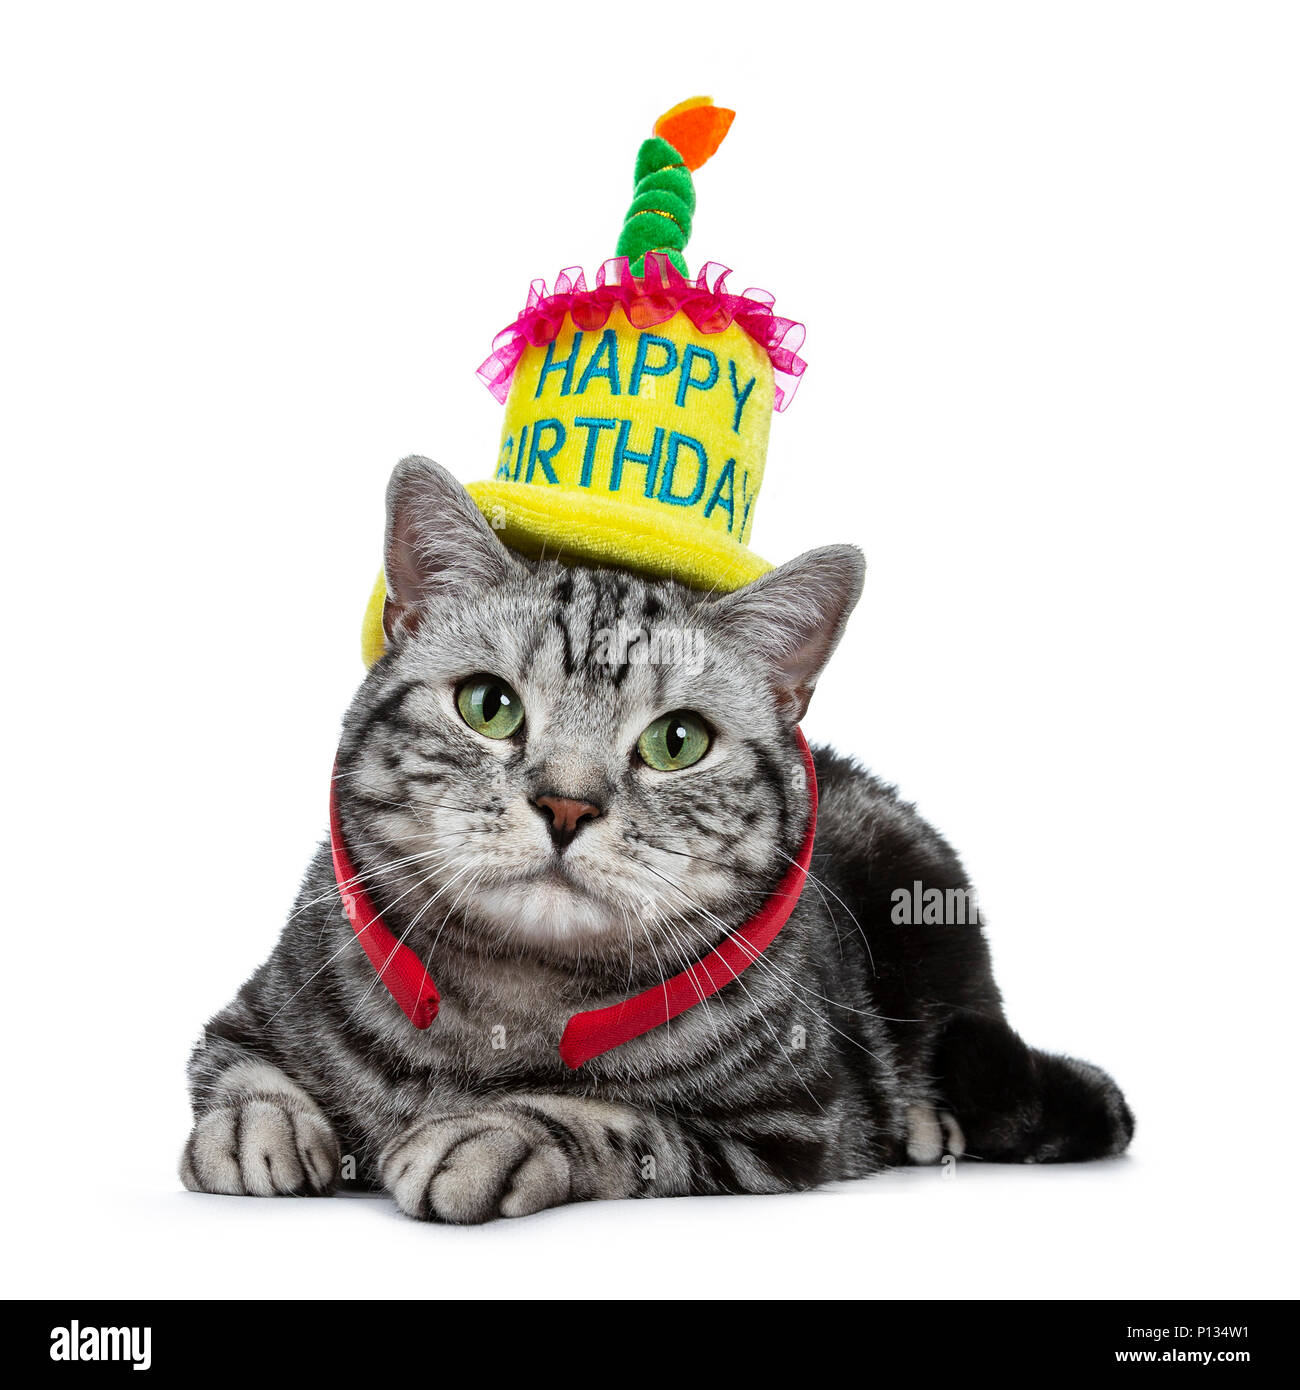 Handsome Black Tabby British Shorthair Cat With Green Laying Down Wearing A Yellow Happy Birthday Hat Isolated On White Background